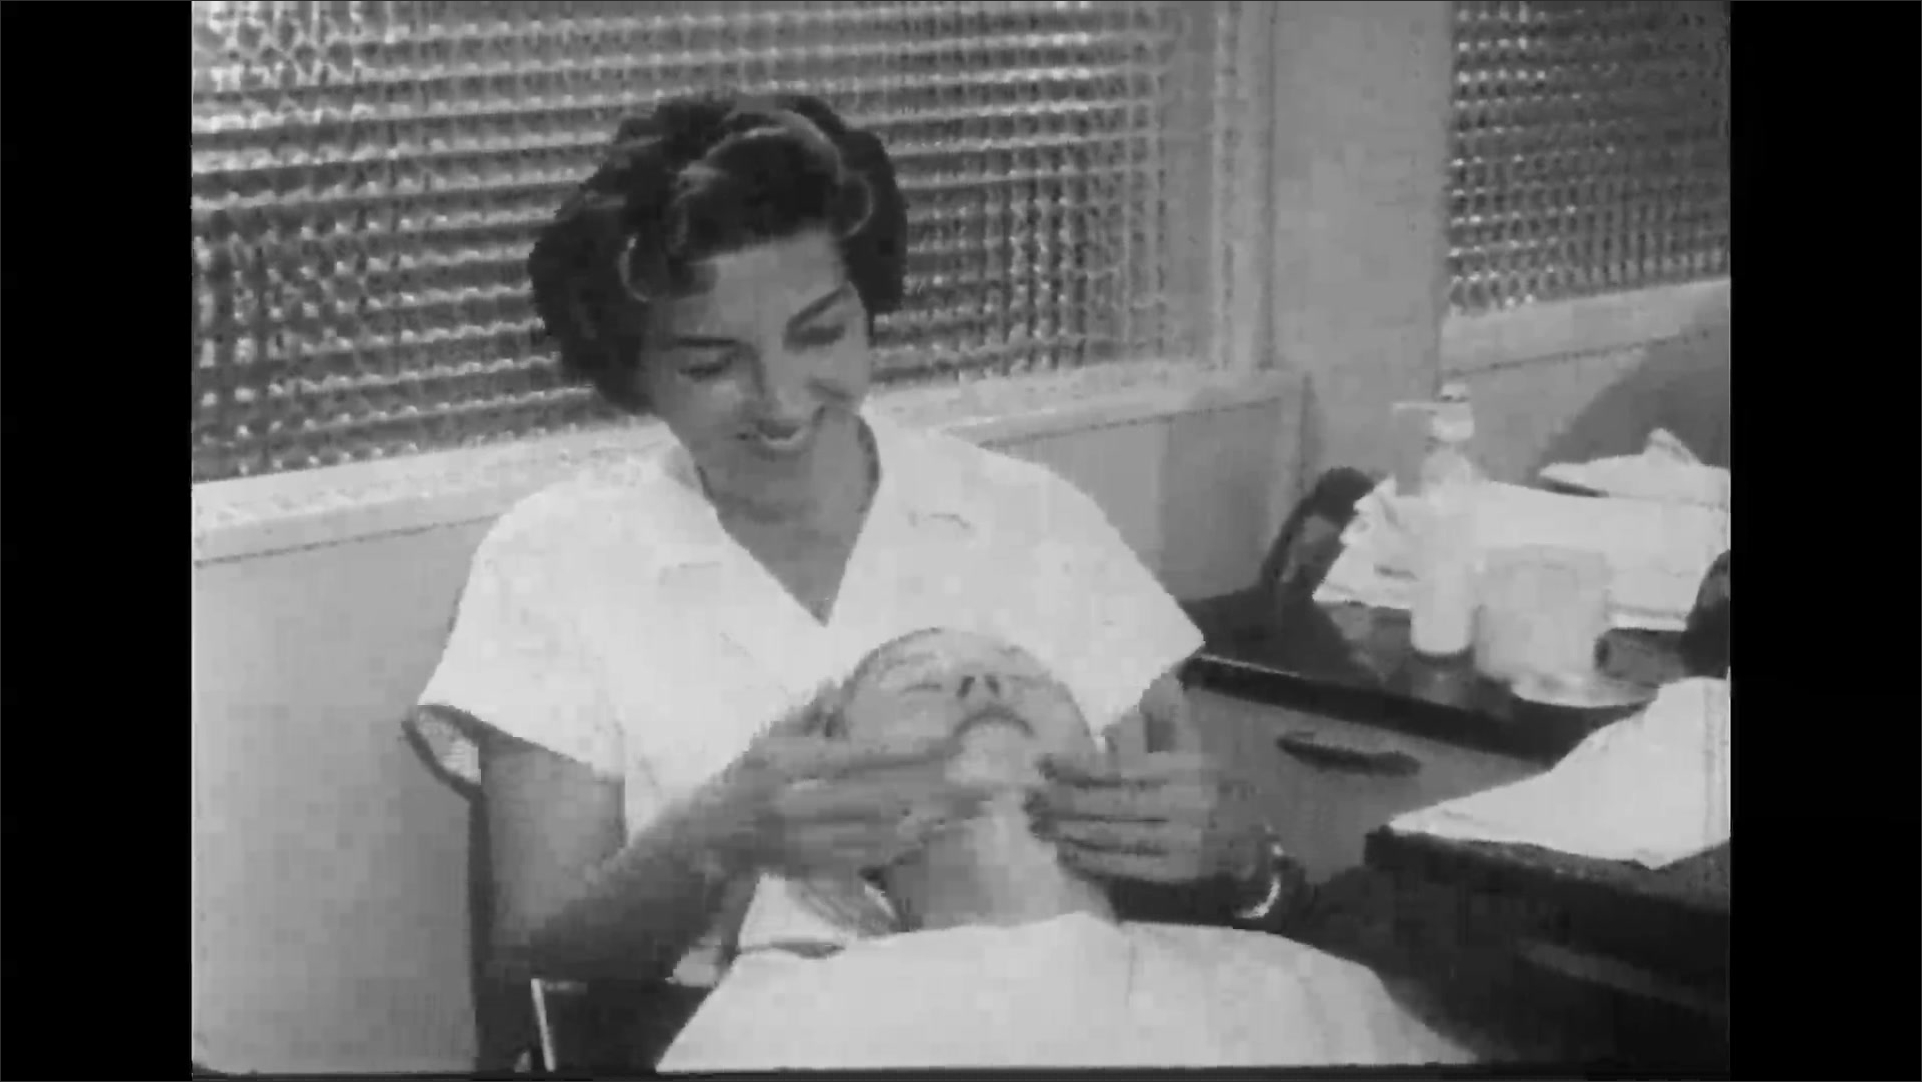 UNITED STATES 1950s: Stylist gives woman facial / Close up of stylist.